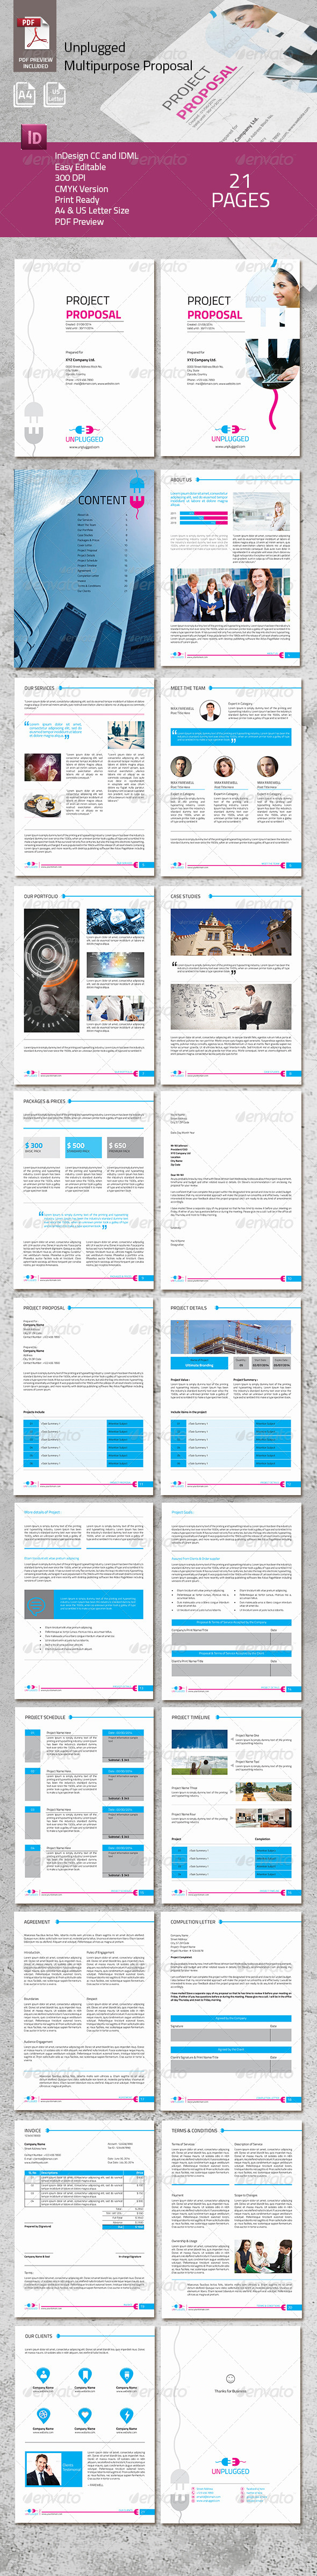 GraphicRiver Unplugged Multipurpose Proposal 8180846